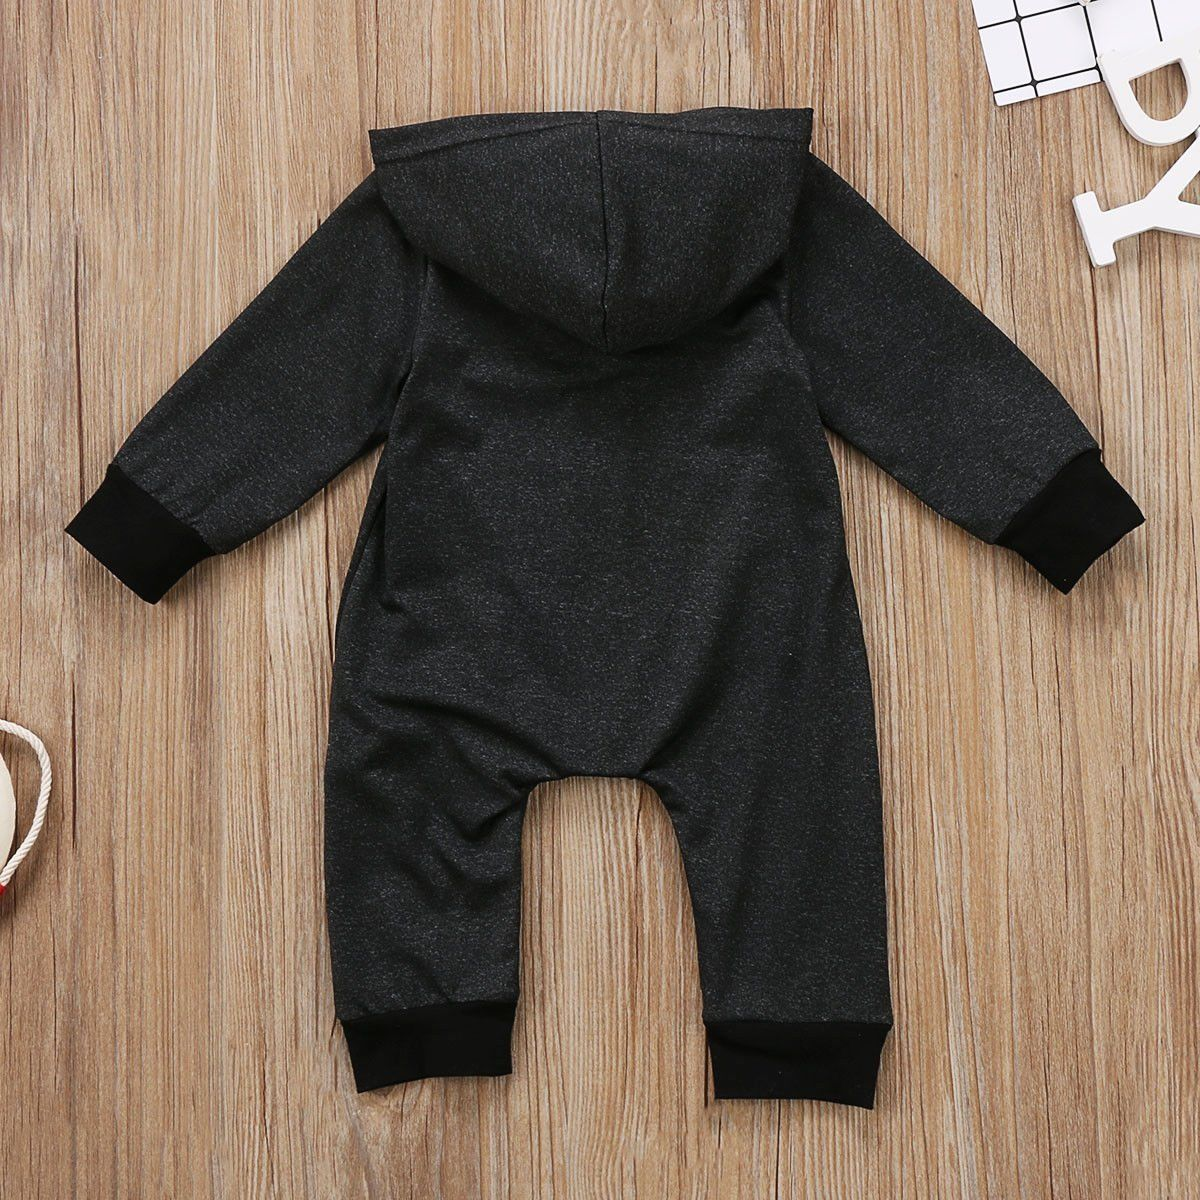 2018 Newborn Infant Baby Boy Girl Clothes Kids Hooded Cotton Zipper Romper Jumpsuit Bodysuit One-Piece Outfits Children Clothes